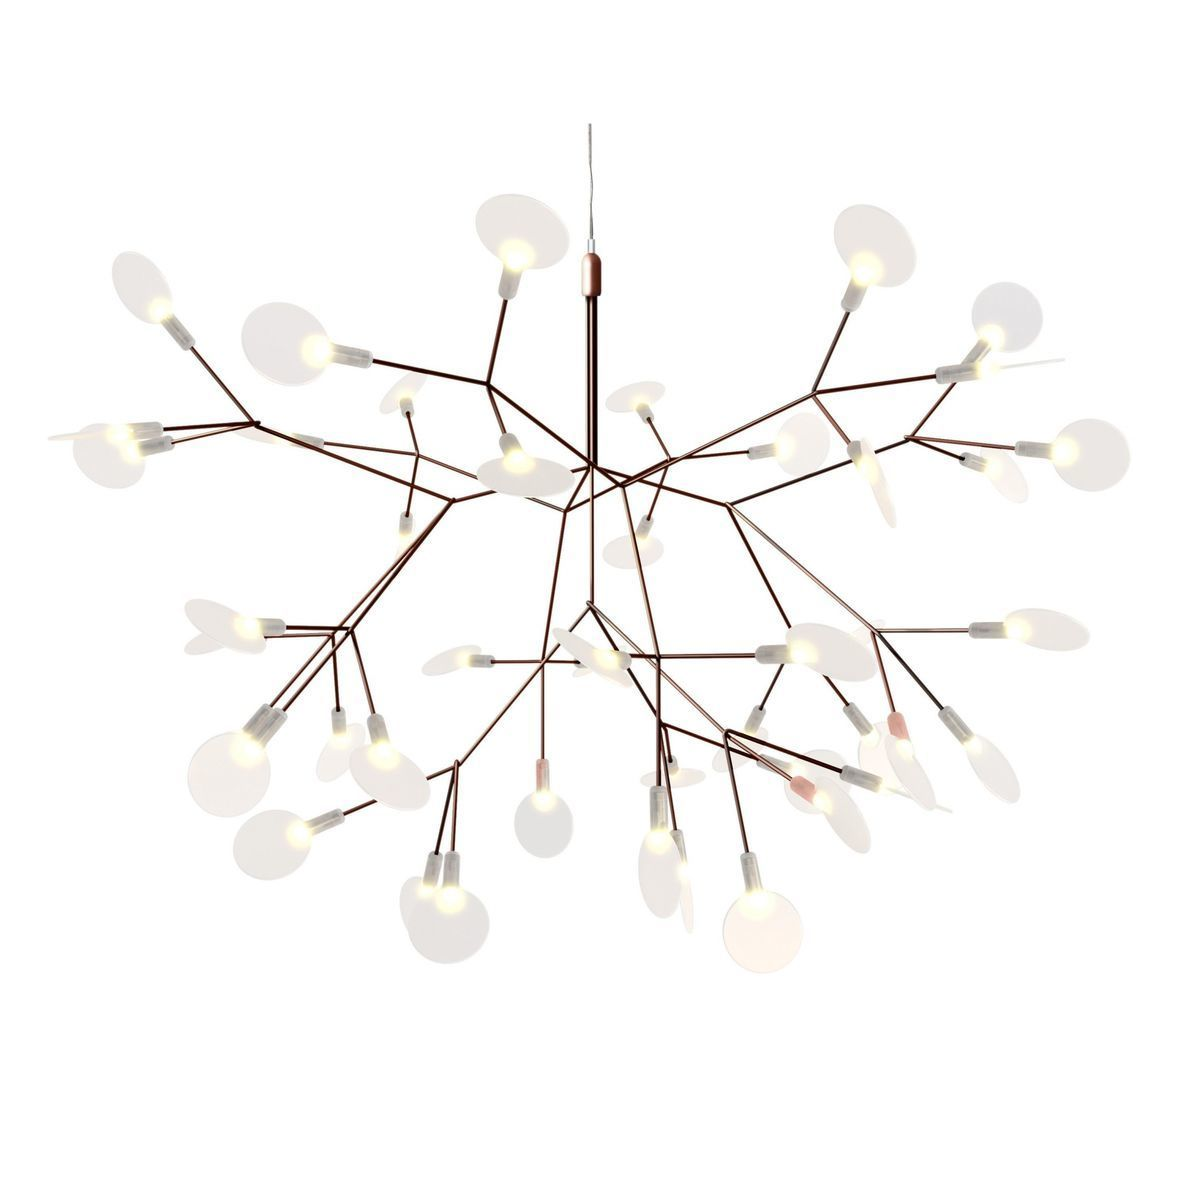 Pipe 3 led suspension lamp decor walther ambientedirect com - Moooi Heracleum Small Lustre Suspension Lamp Cm Ambiente Direct